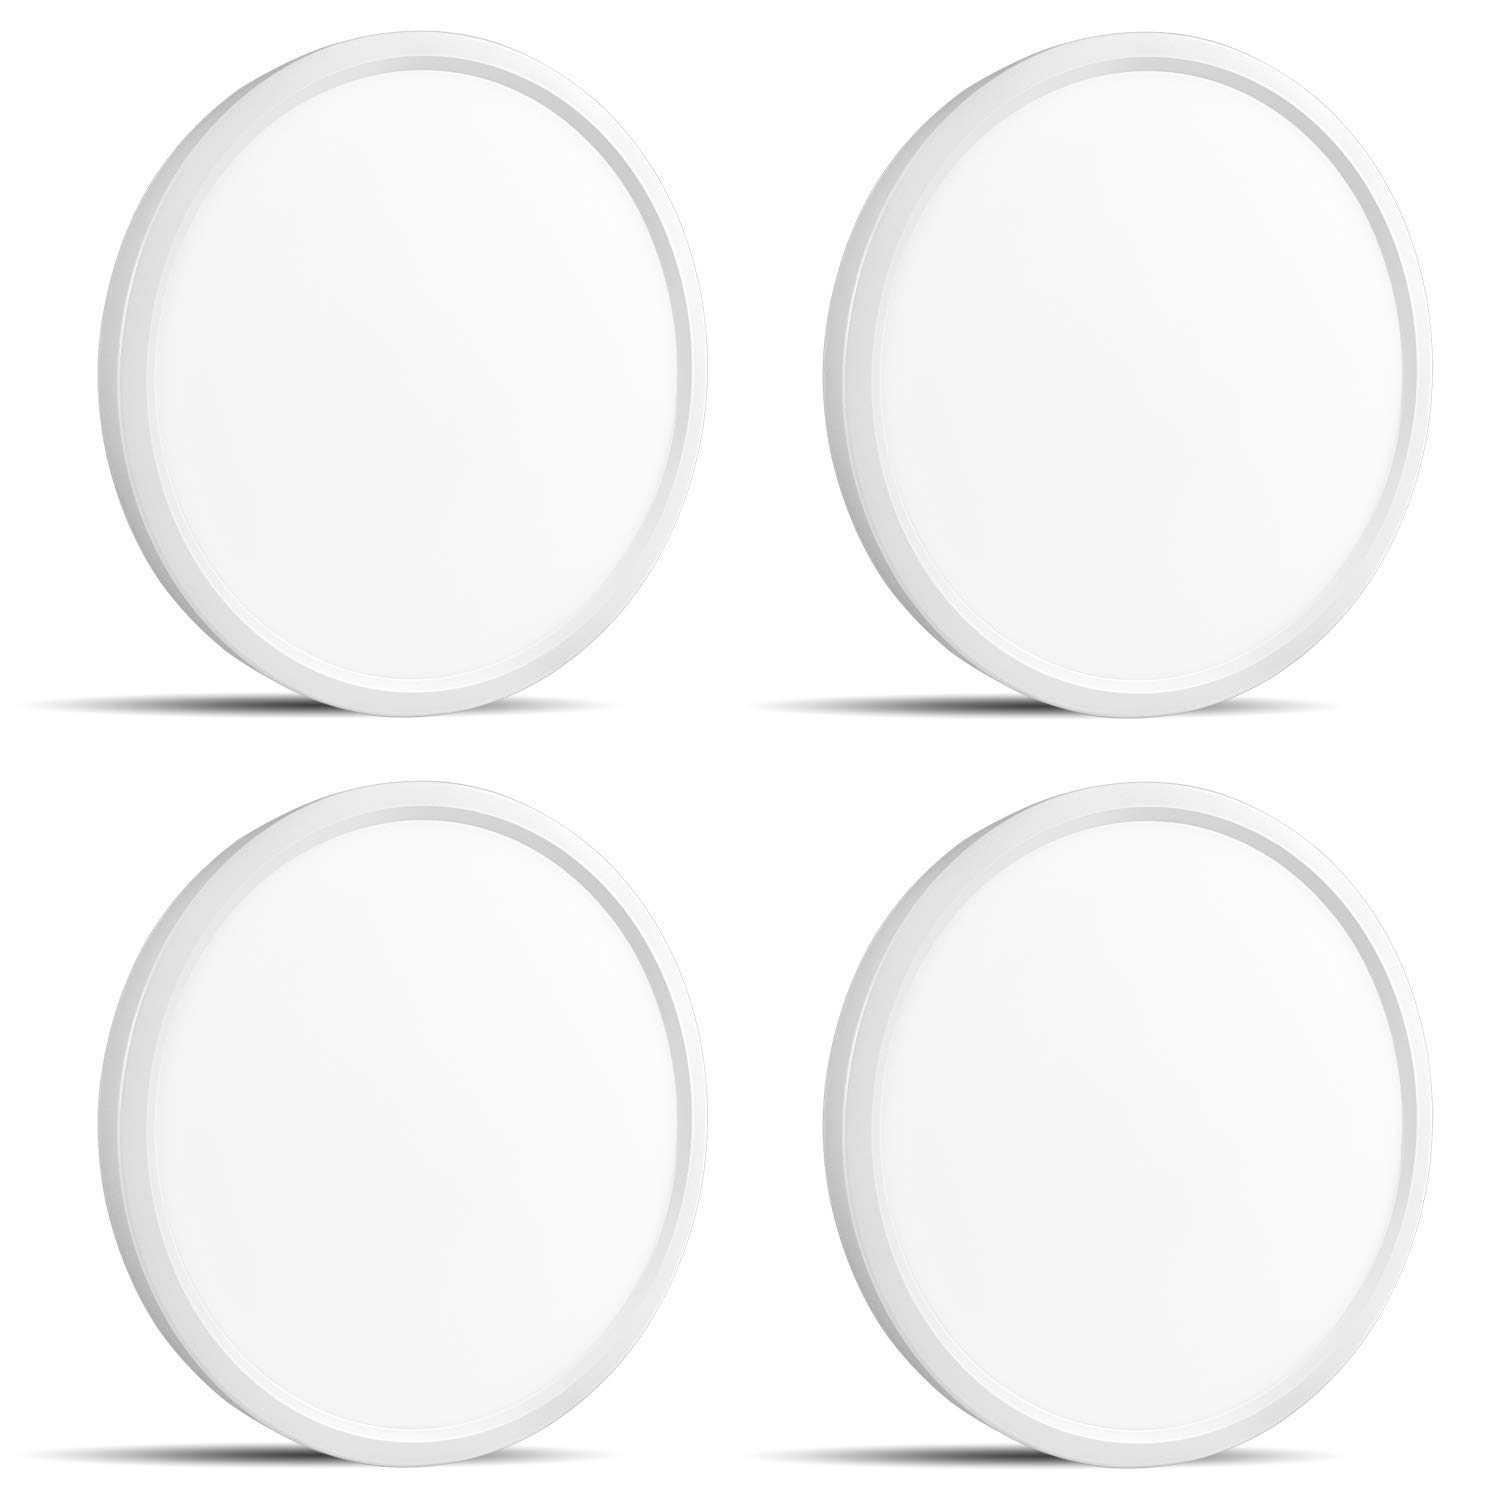 4-Pack 7 Inch LED Flush Mount Ceiling Light, Luxrite, 4000K (Cool White), 1000LM, 15W, White Finish, Dimmable, Surface Mount LED Ceiling Light, Wet Rated, Energy Star - Closet, Kitchen, and Bathroom